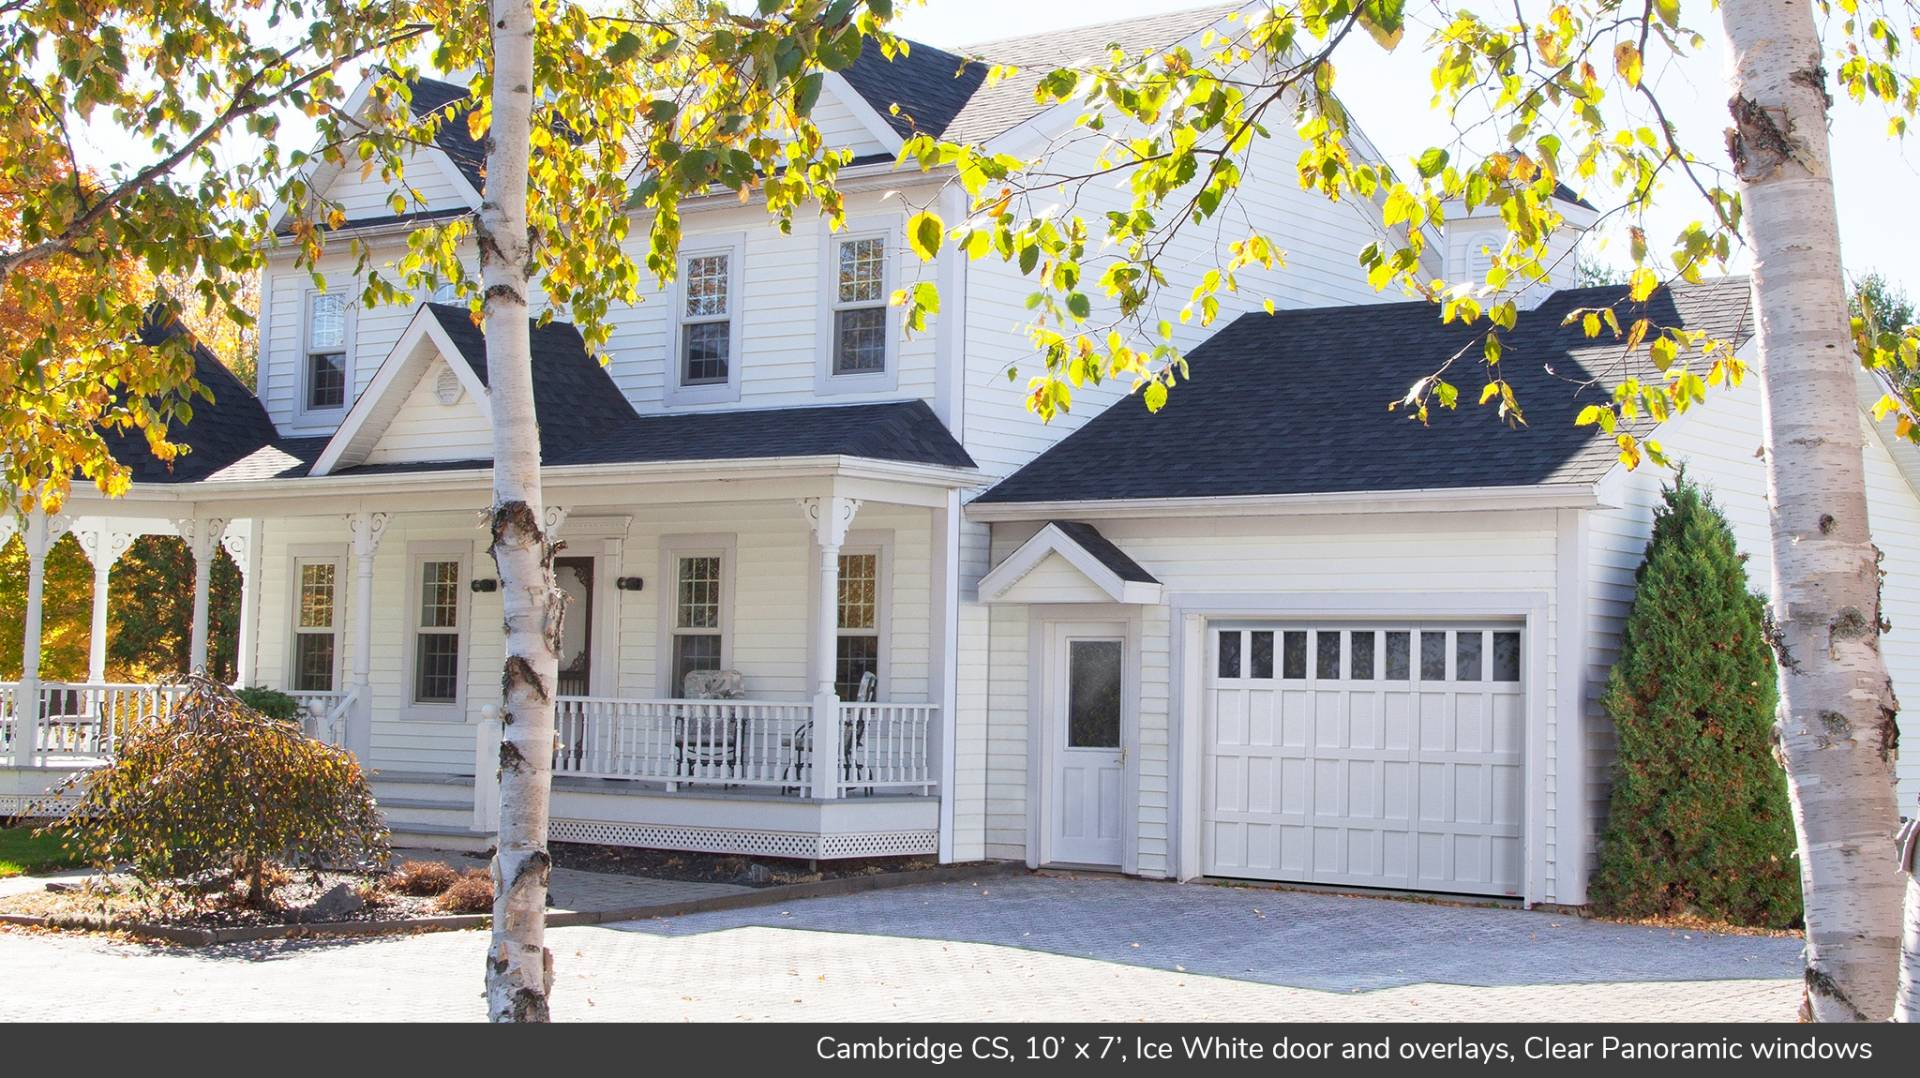 Cambridge CS for a Carriage House style